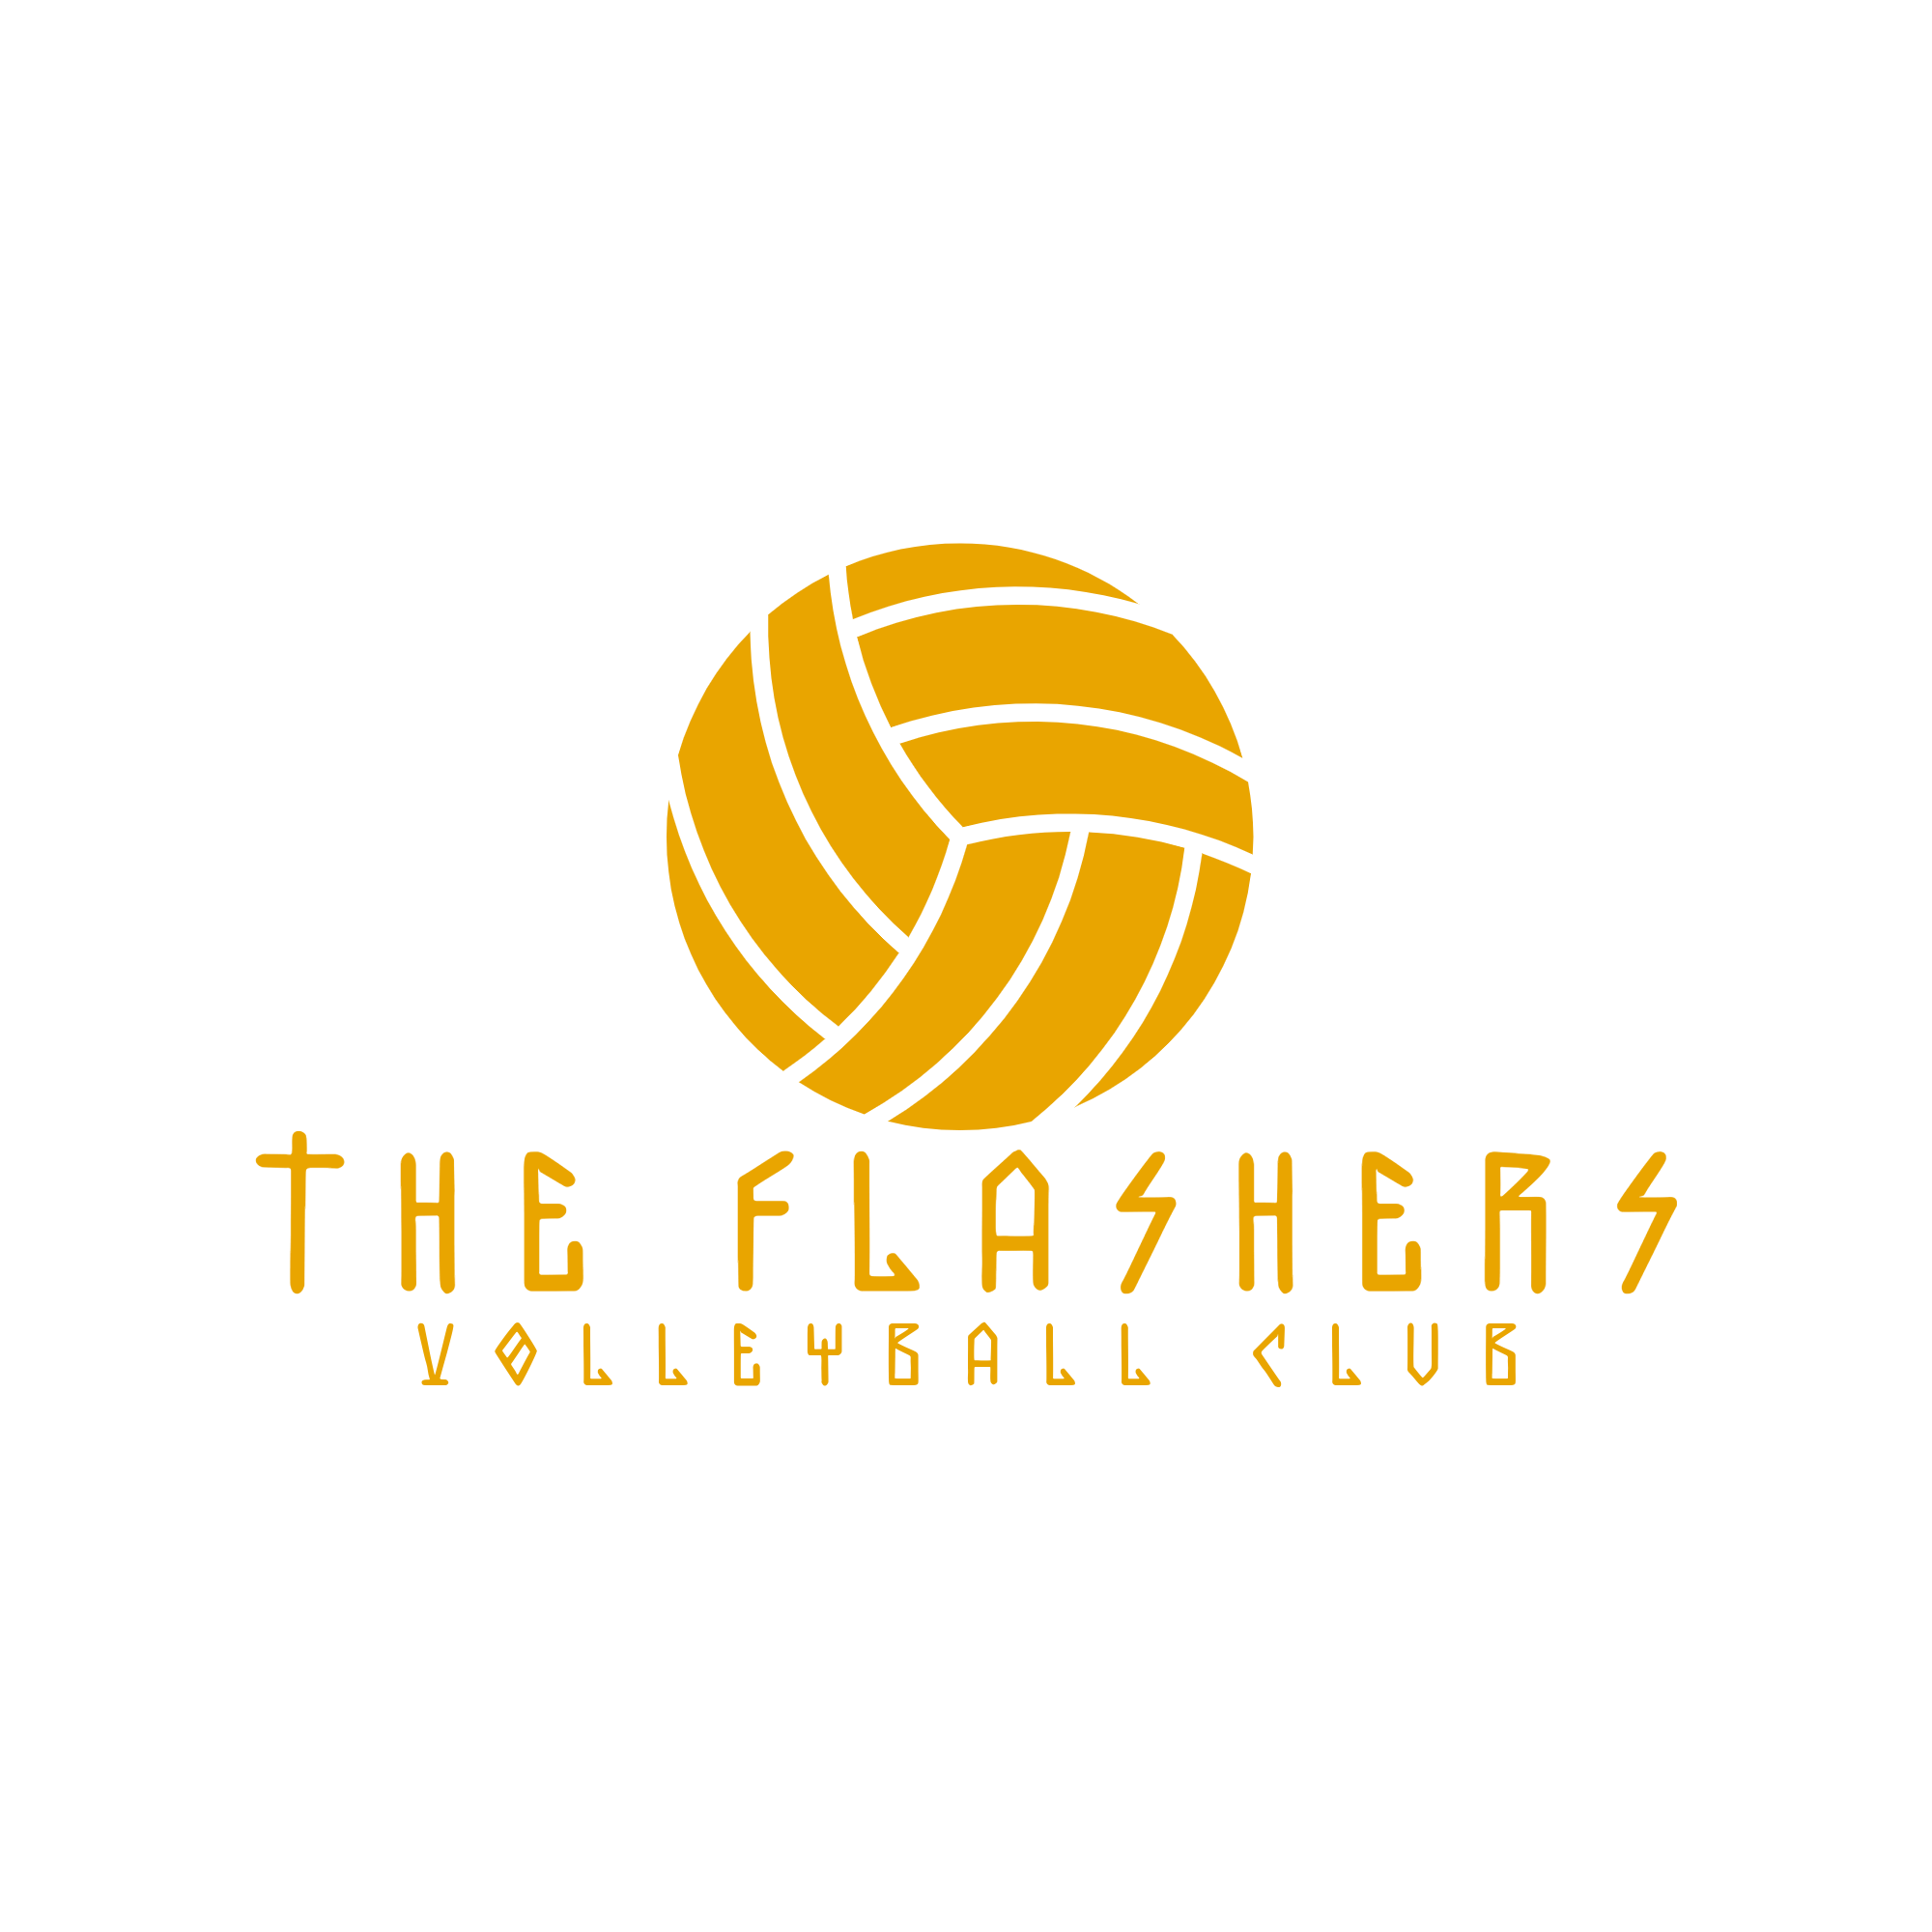 The Flashers Logaster logo